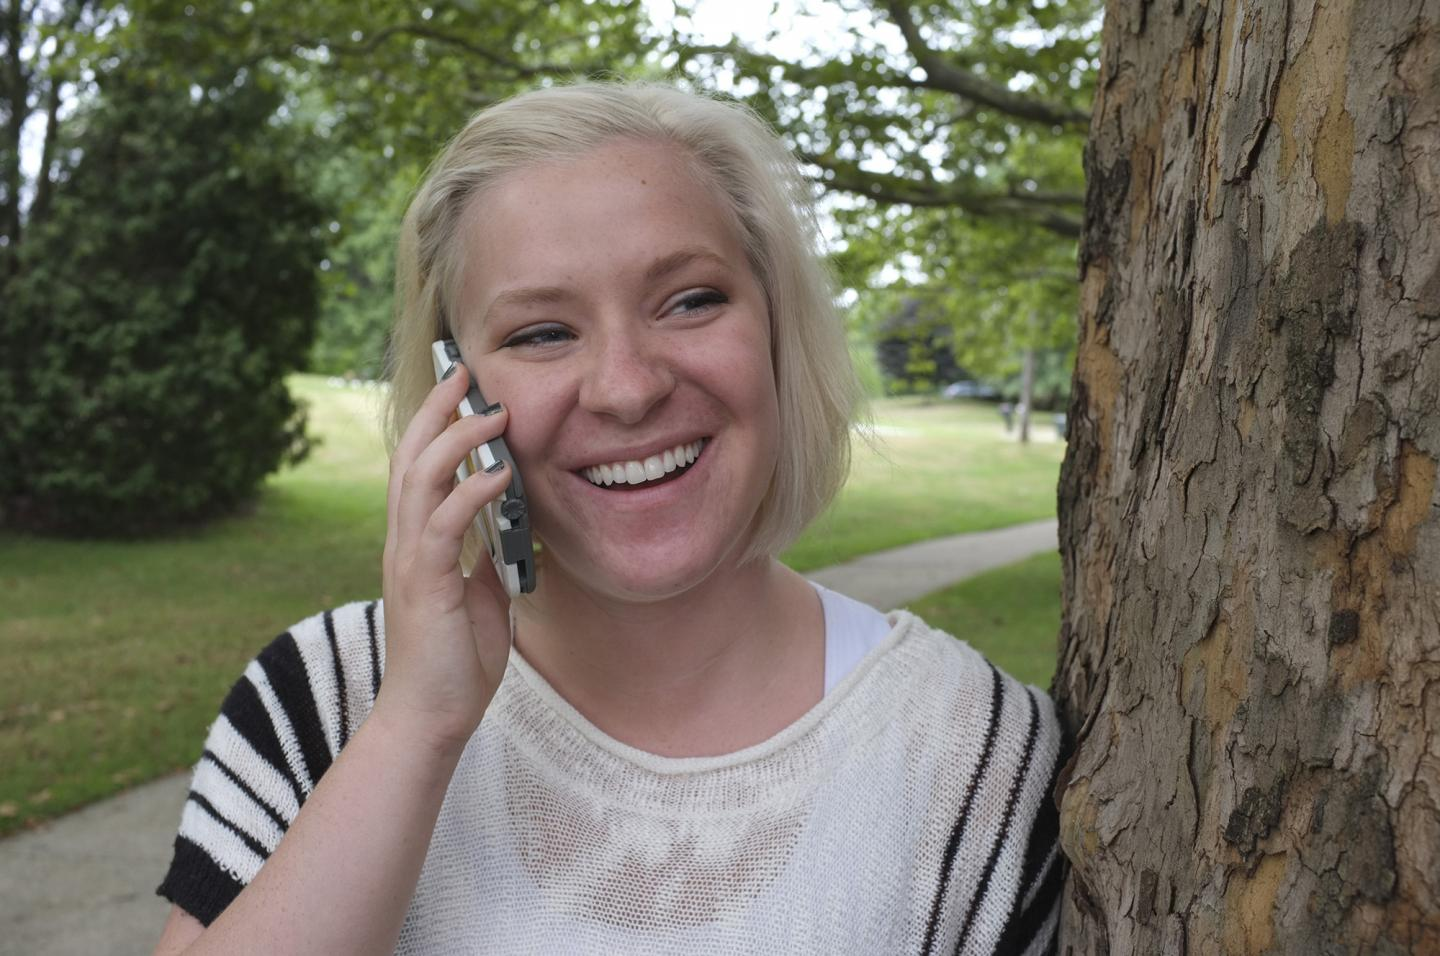 Kent State University Student Talks with Her Parents on Her Cell Phone